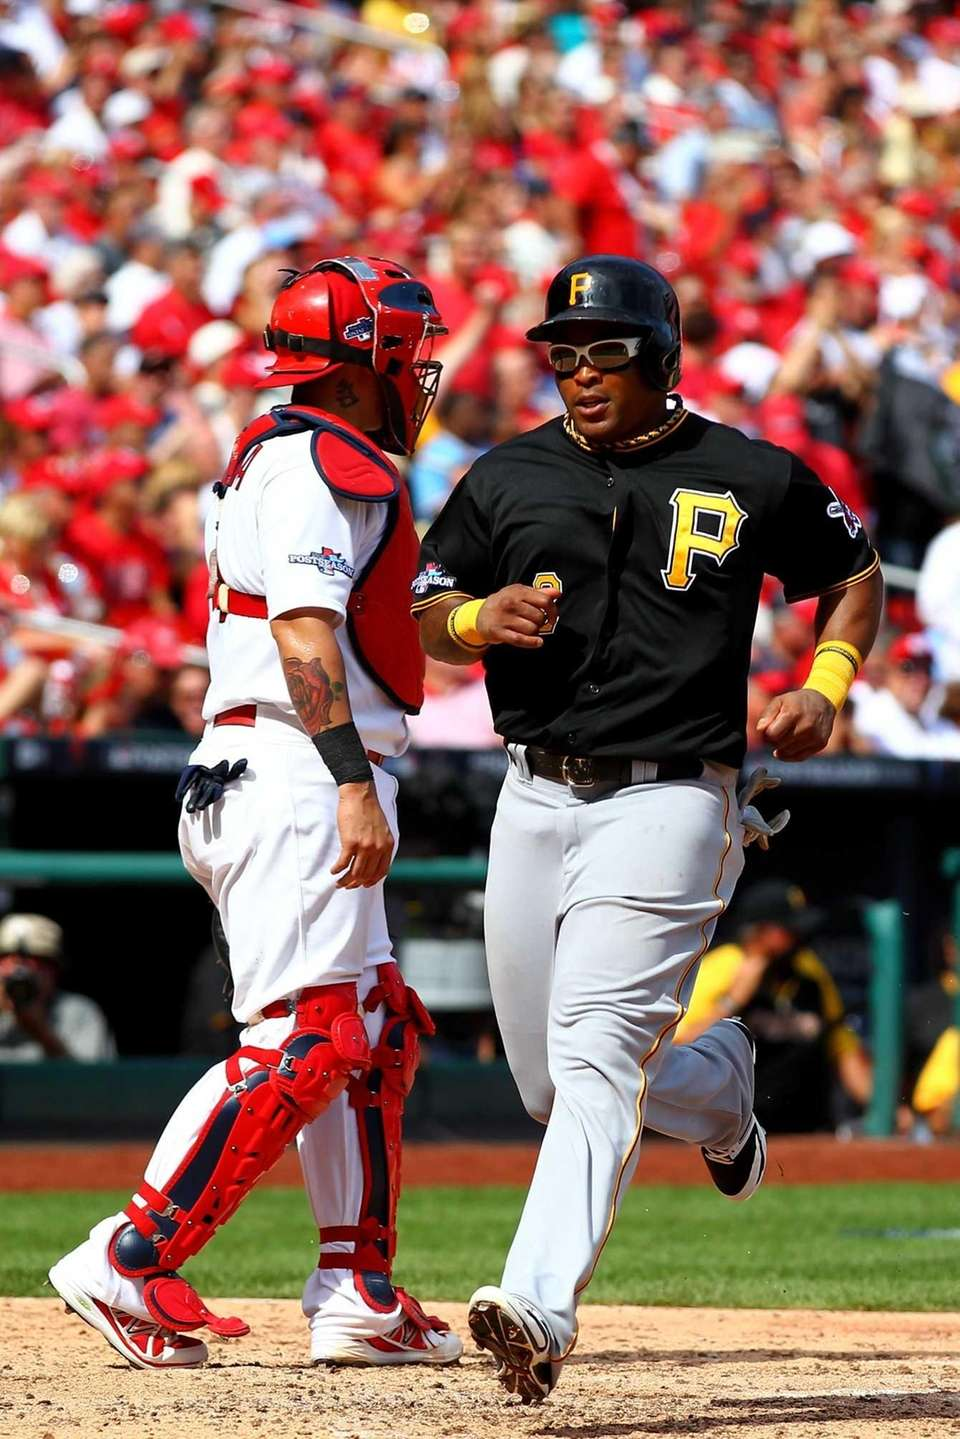 Marlon Byrd of the Pittsburgh Pirates scores a